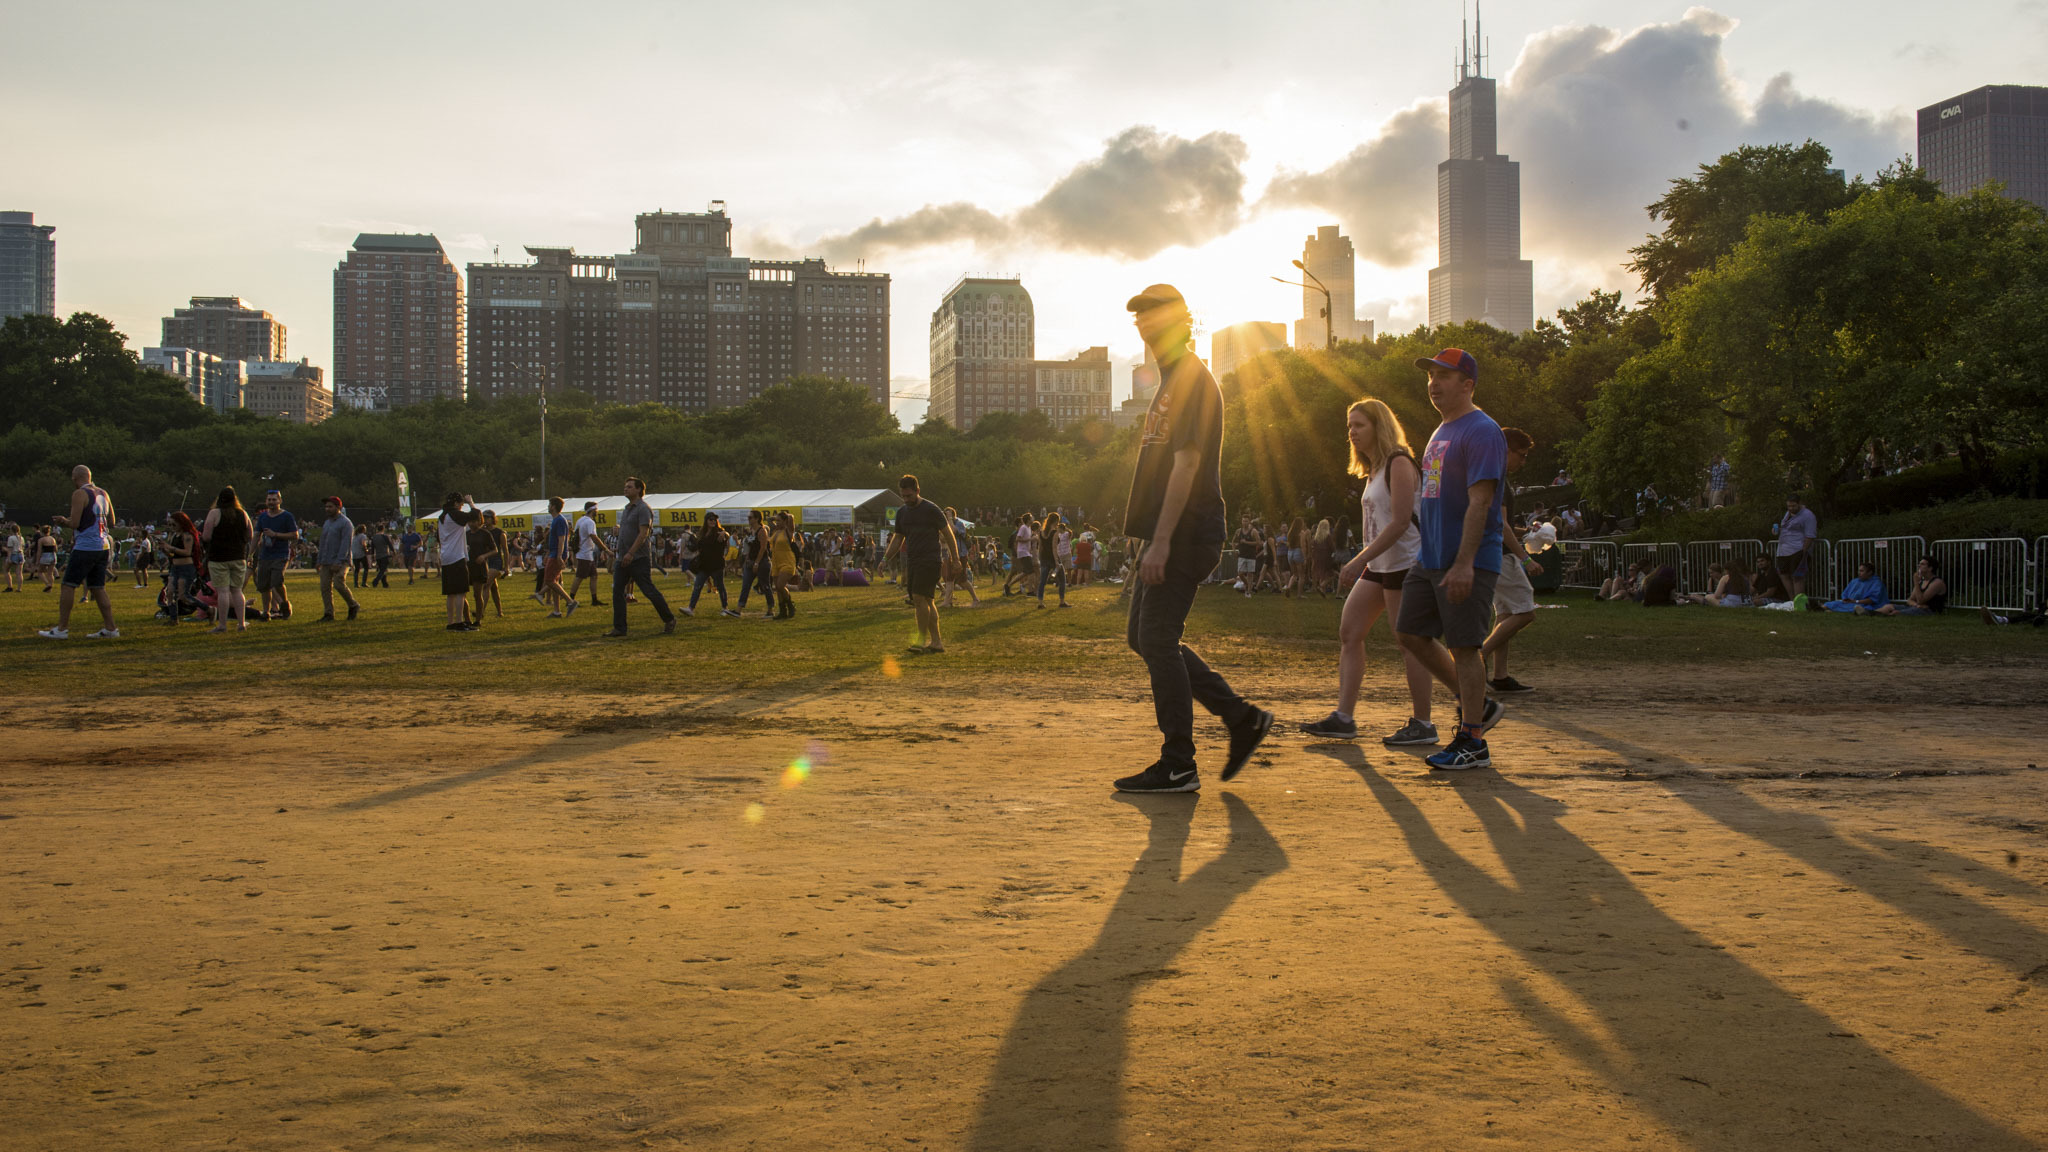 The best tweets from Lollapalooza so far